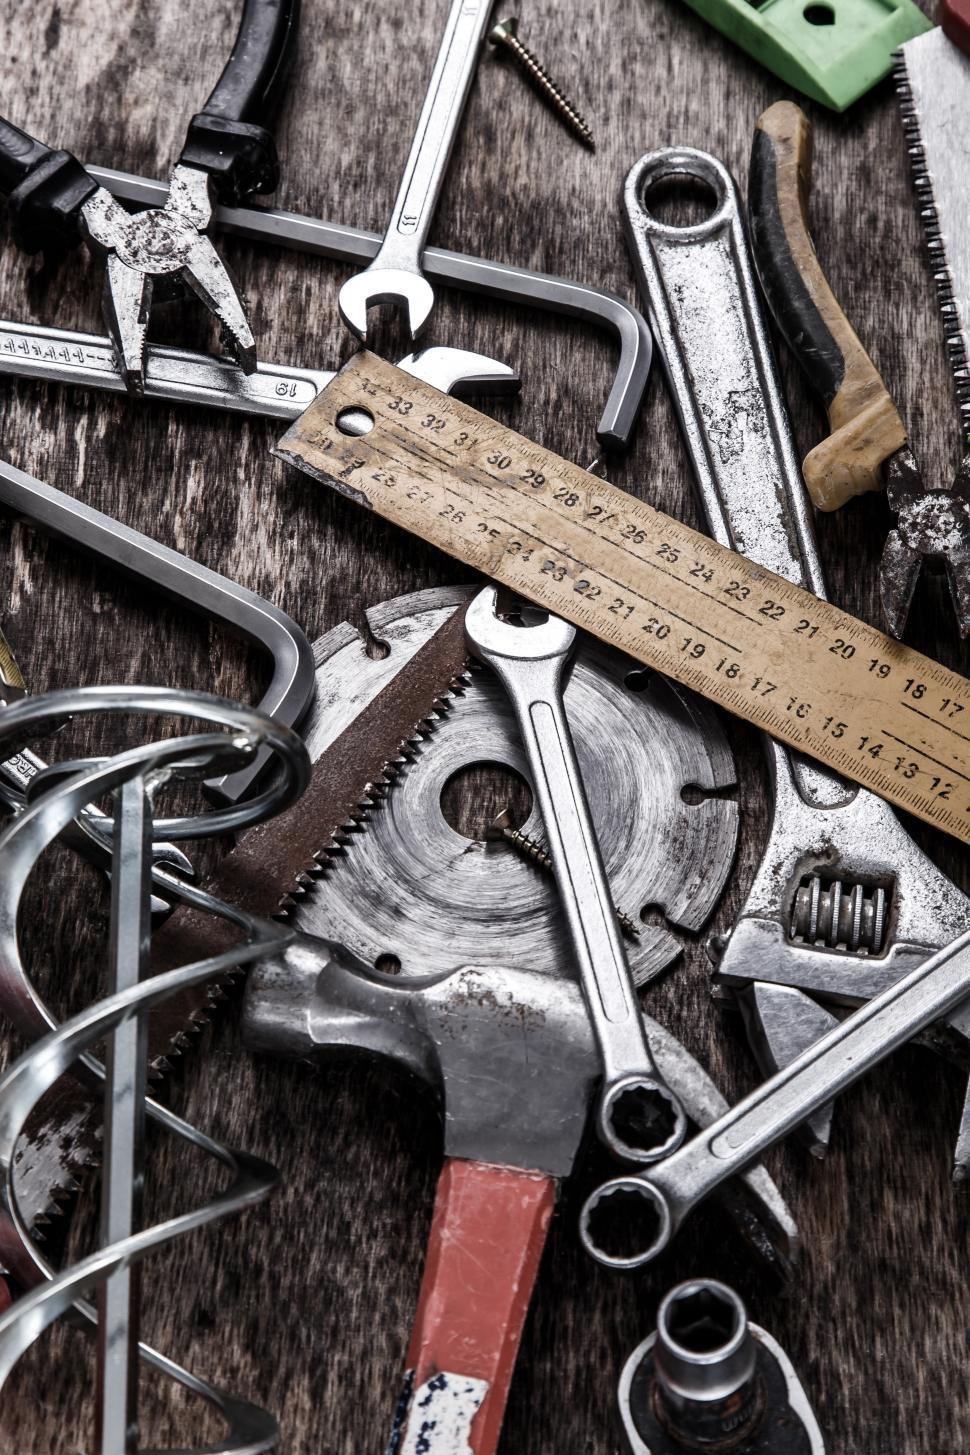 Download Free Stock Photo of Tools scattered on the table